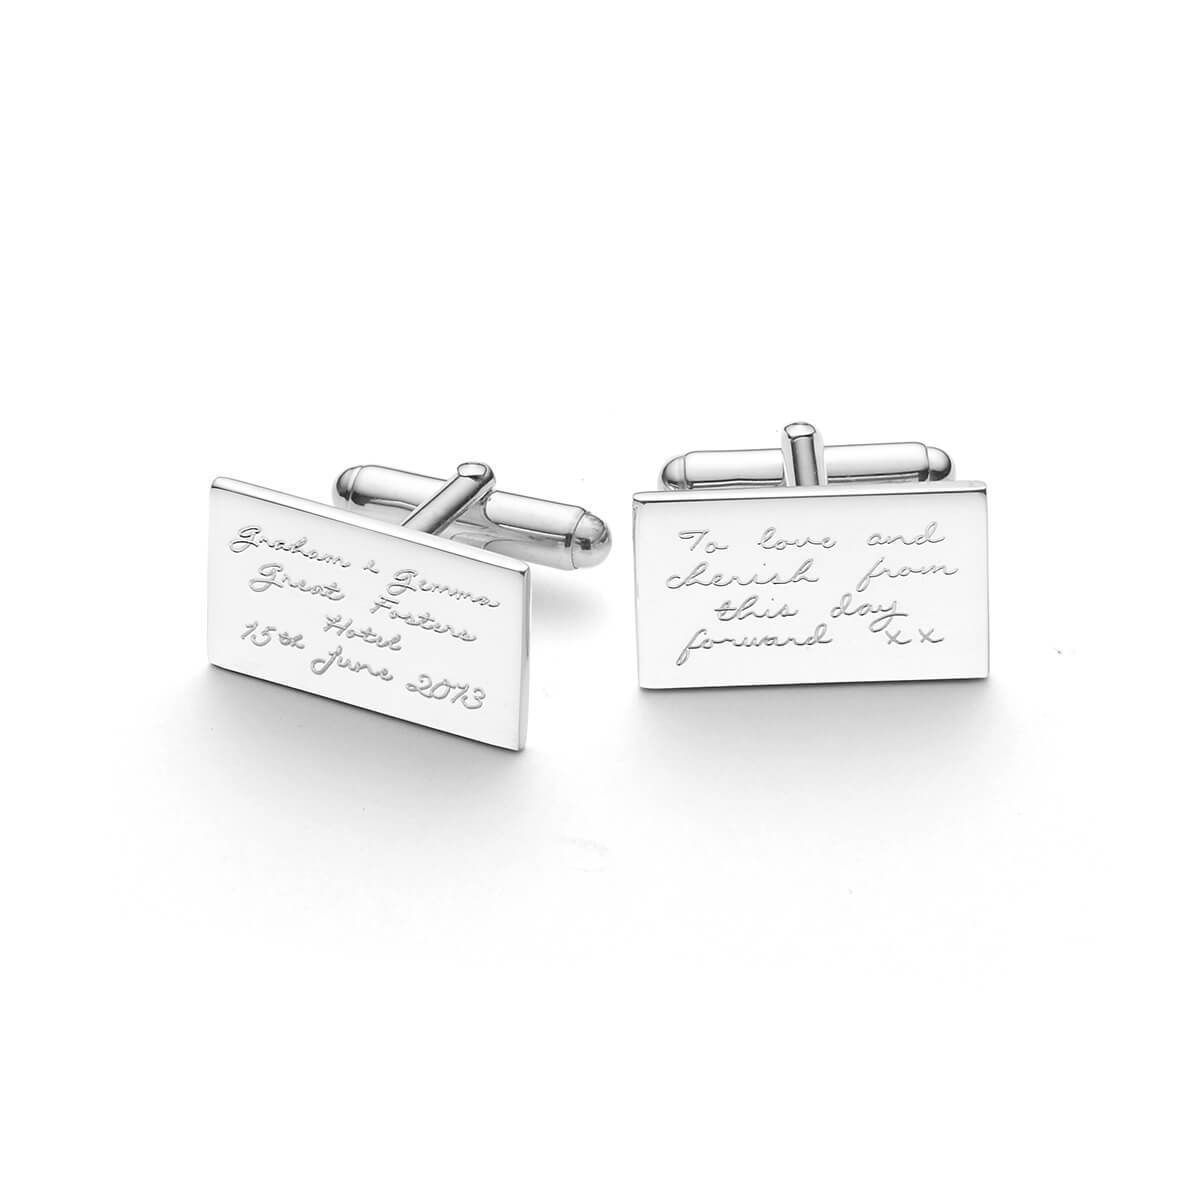 Personalised Engraved Silver Cufflinks